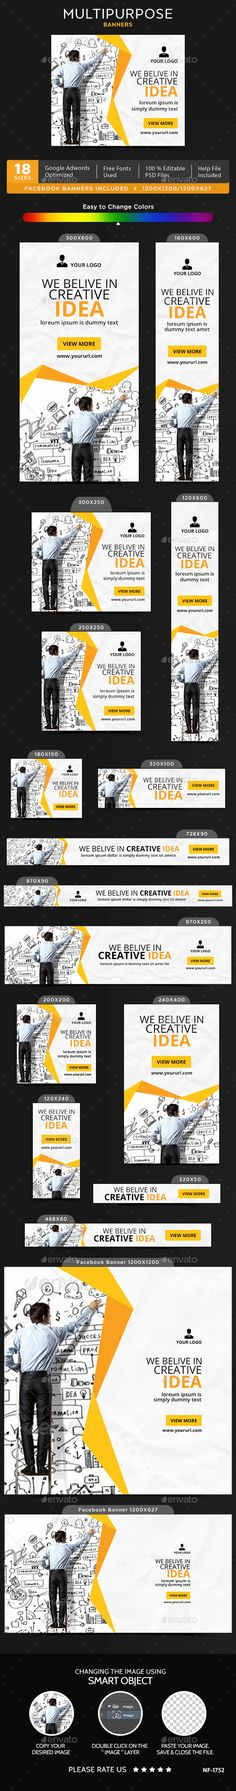 Multipurpose Banners - Banners & Ads Web Elements Download here : https://graphicriver.net/item/multipurpose-banners/19770440?s_rank=131&ref=Al-fatih